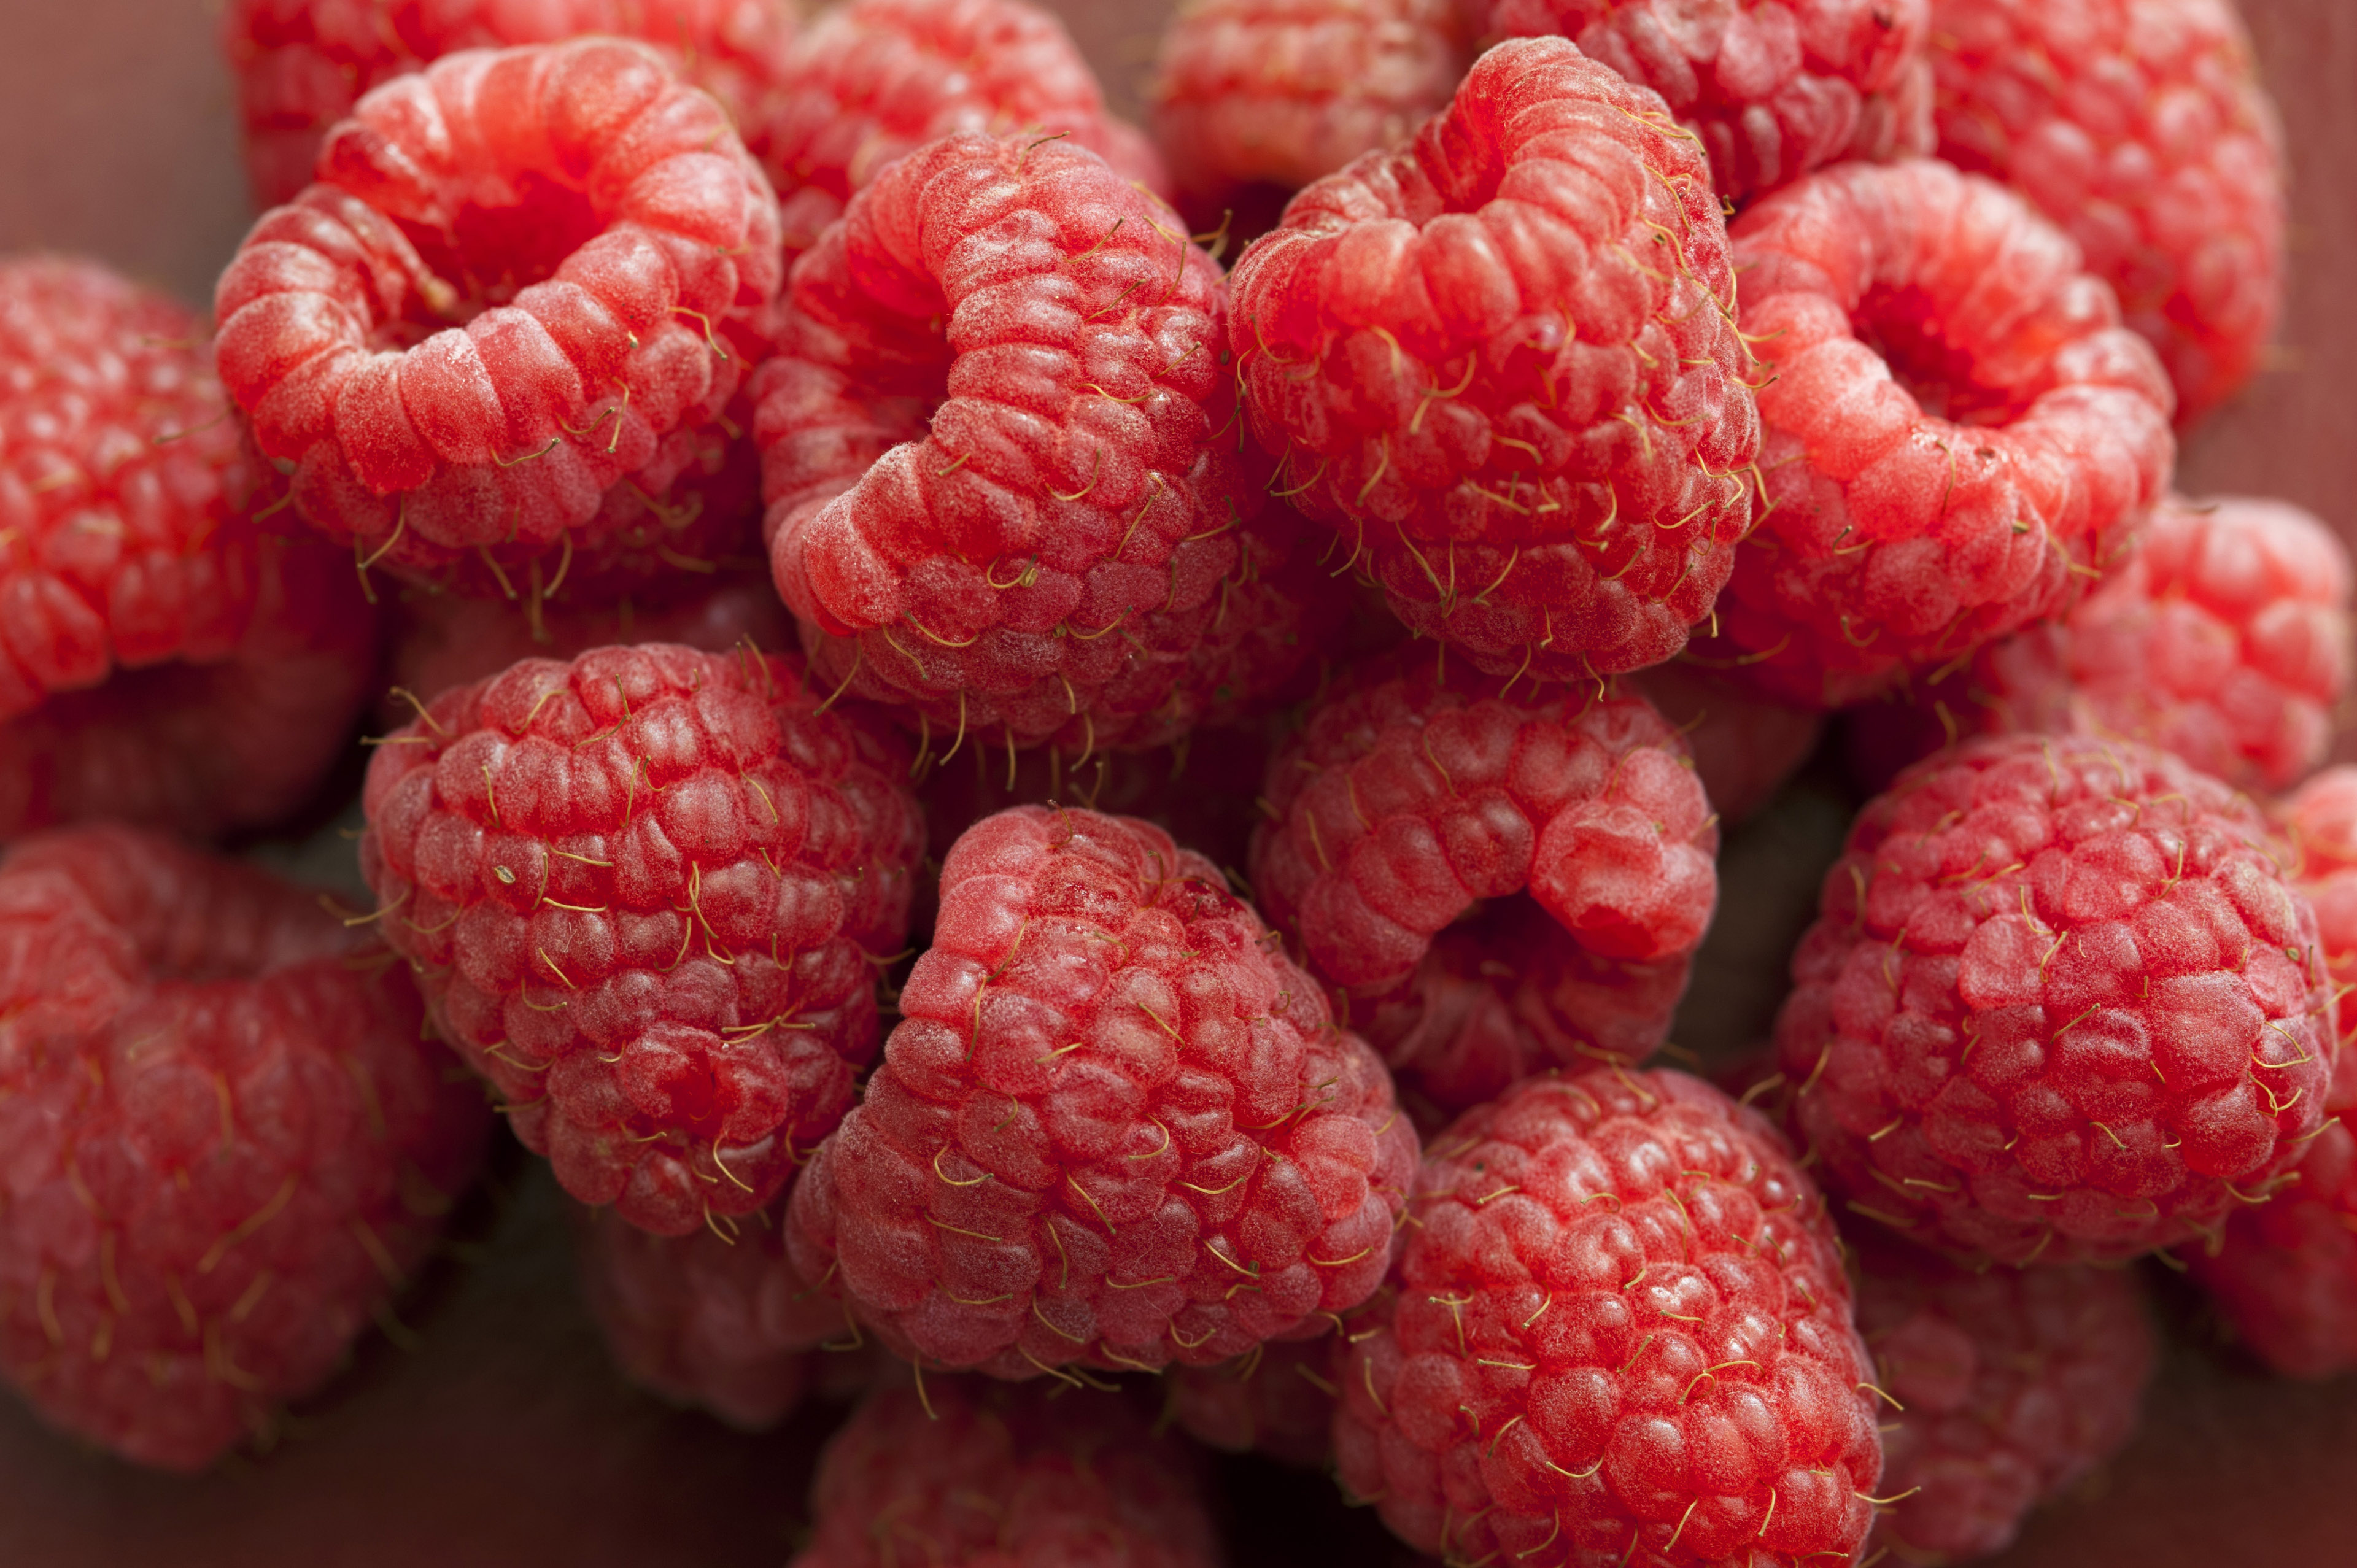 Pile of fresh red raspberries in close-up